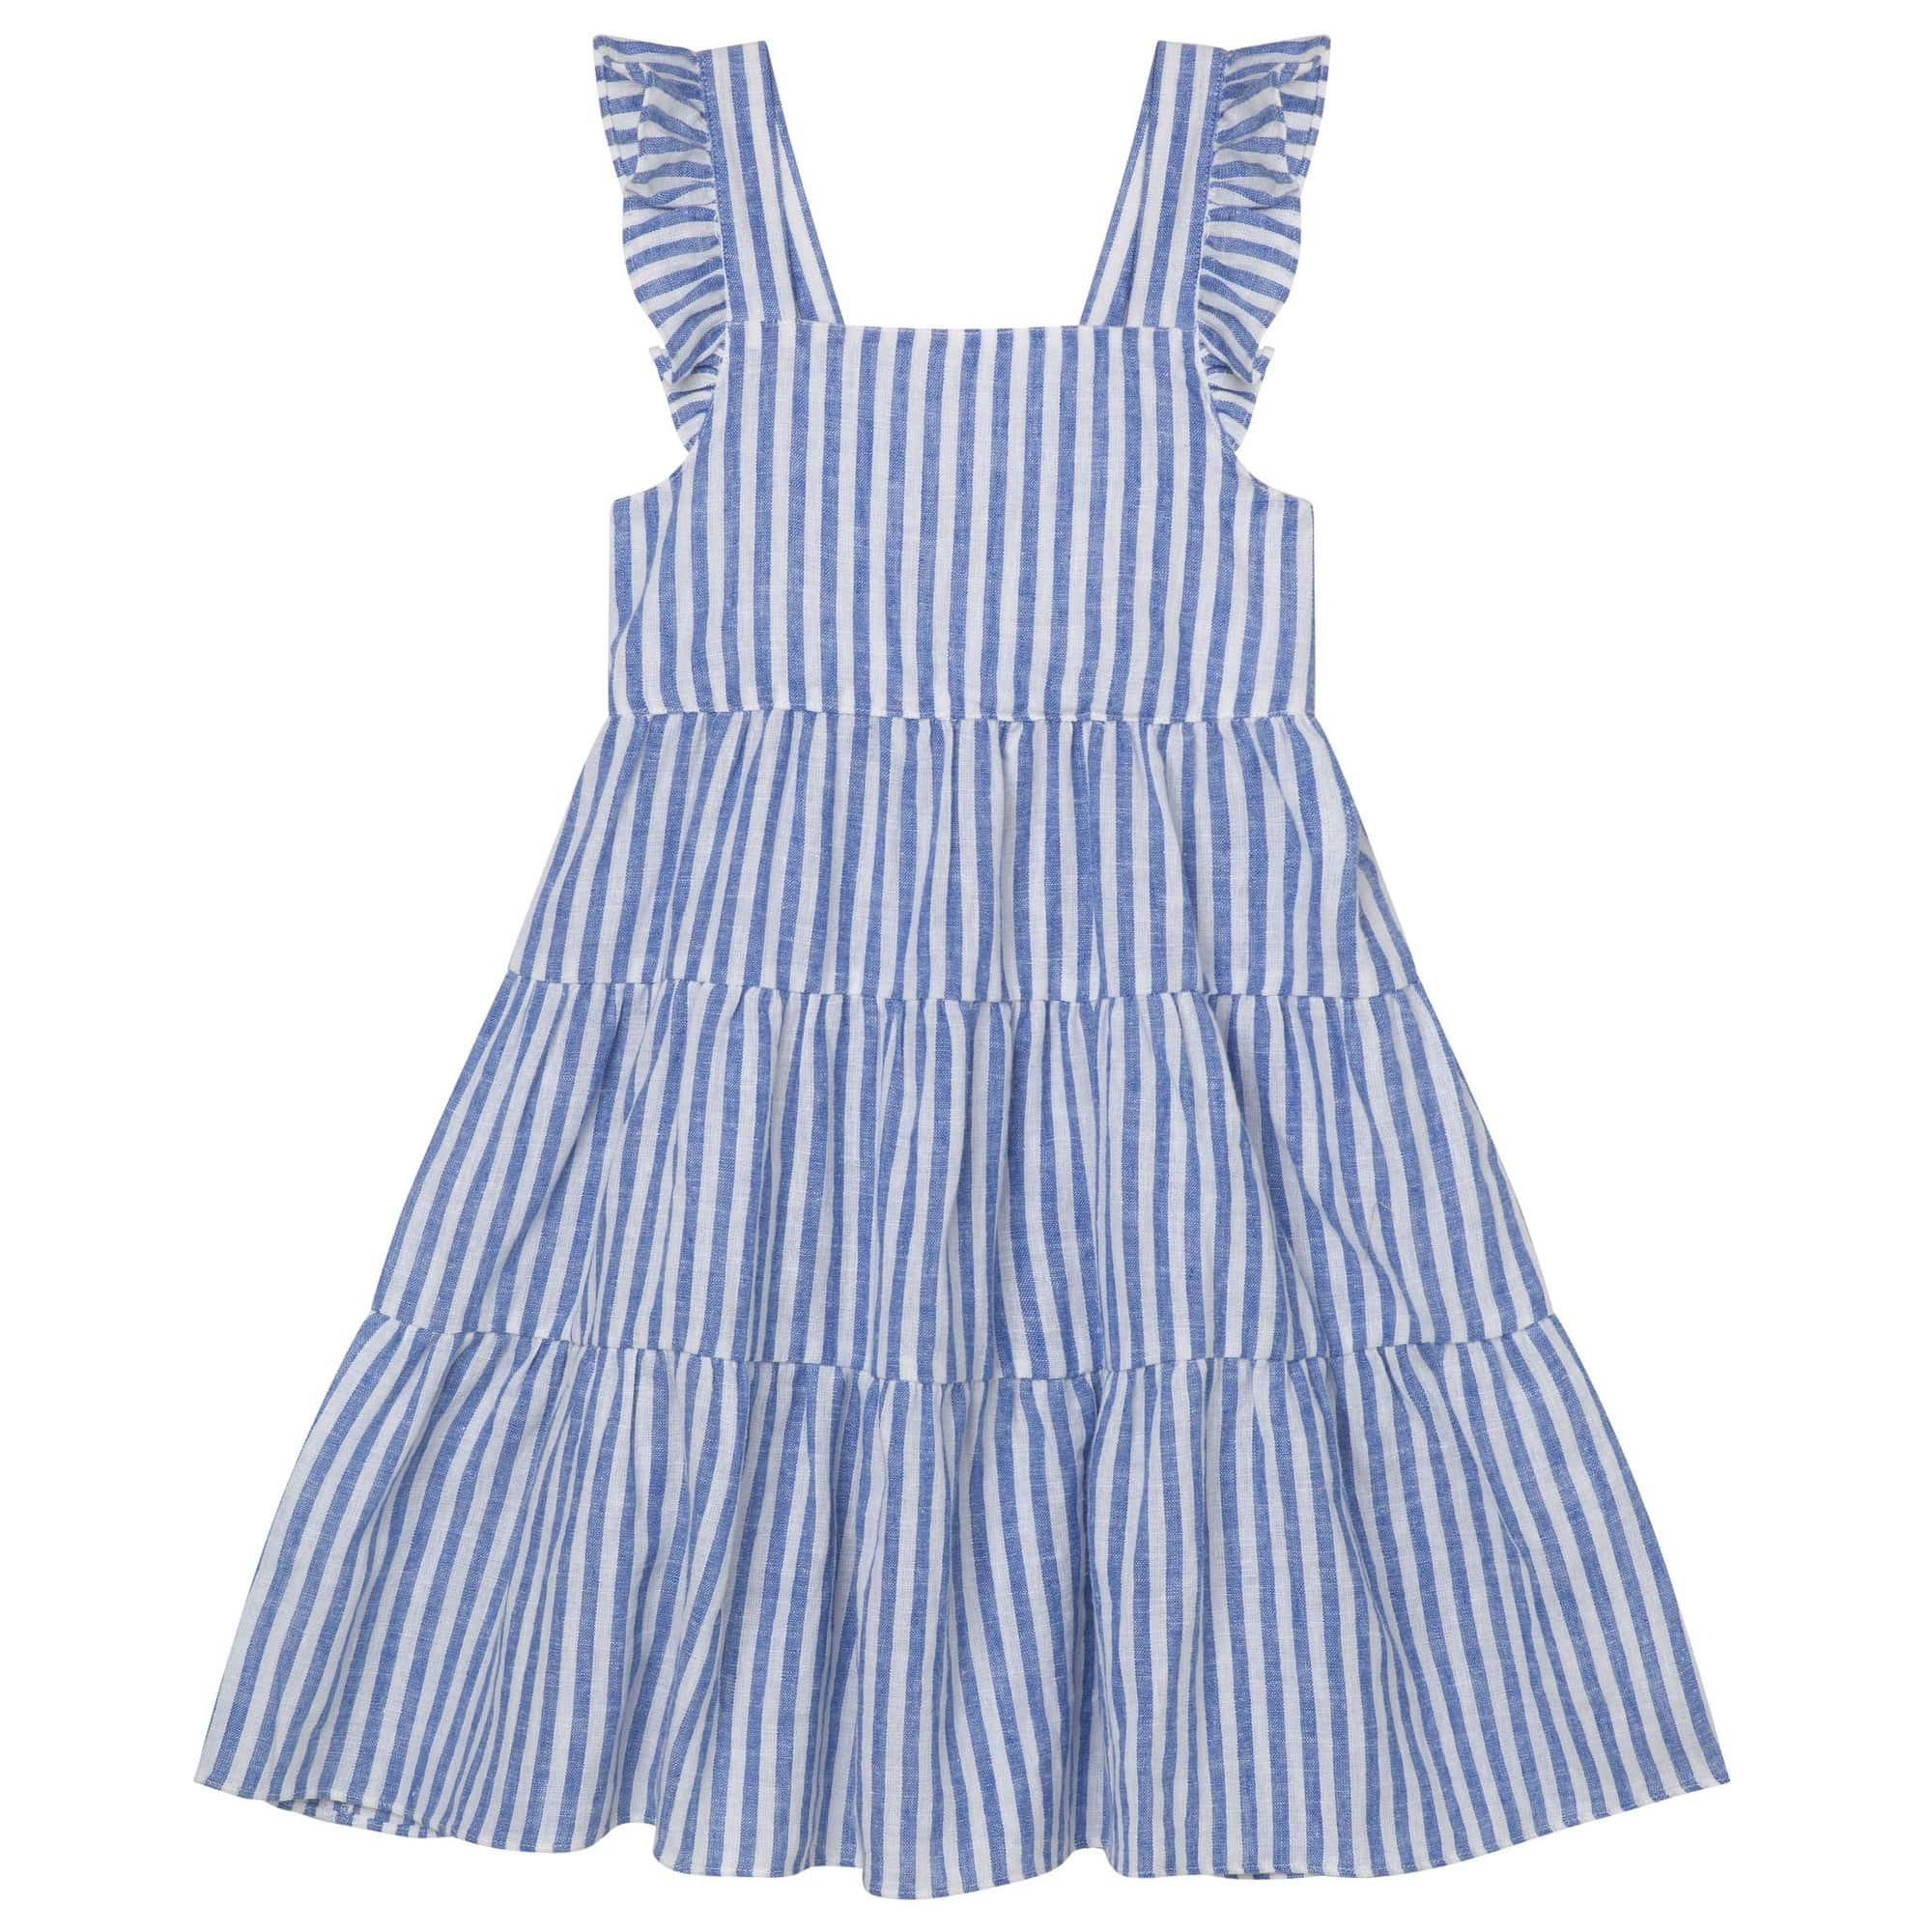 Raspberry Lane Boutique Frill Dress - Seaside Blue